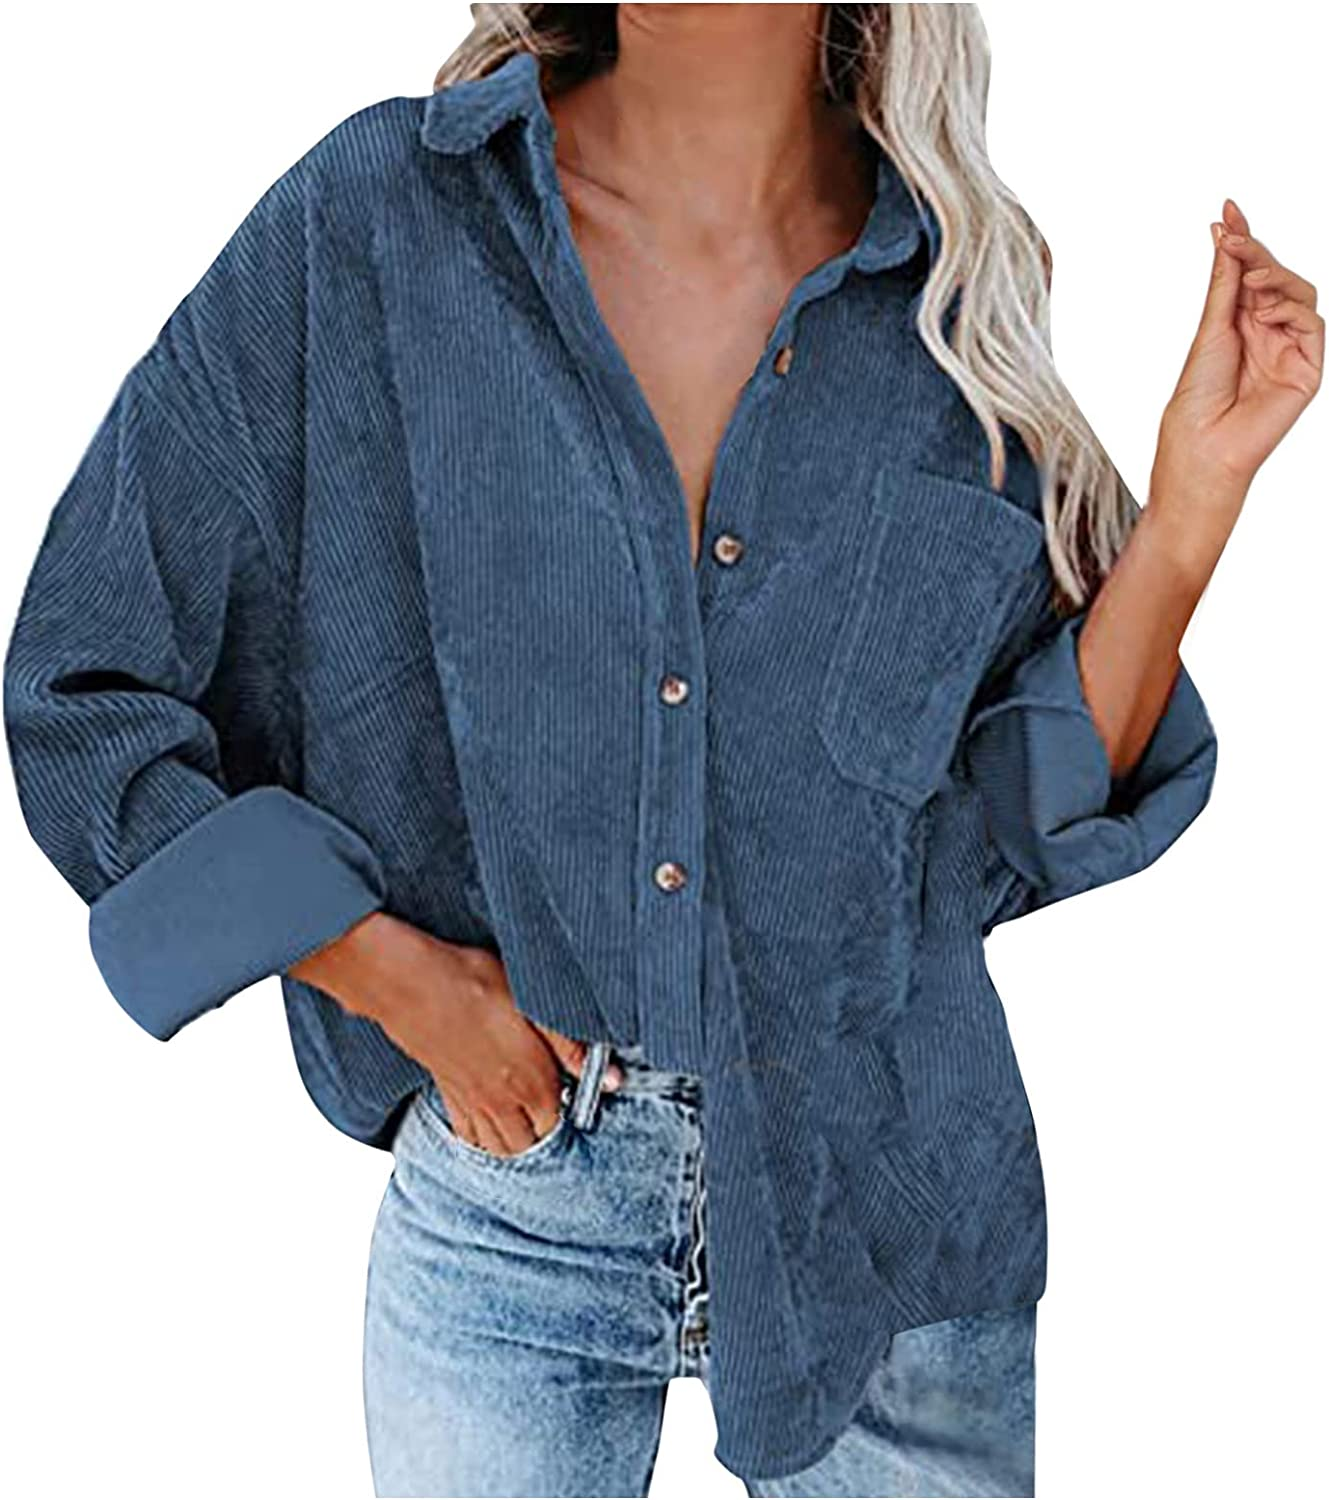 Changeshopping Coat Tops for Women,Autumn and Winter V Neck Long Sleeve Button Casual Blouse Coat Tops